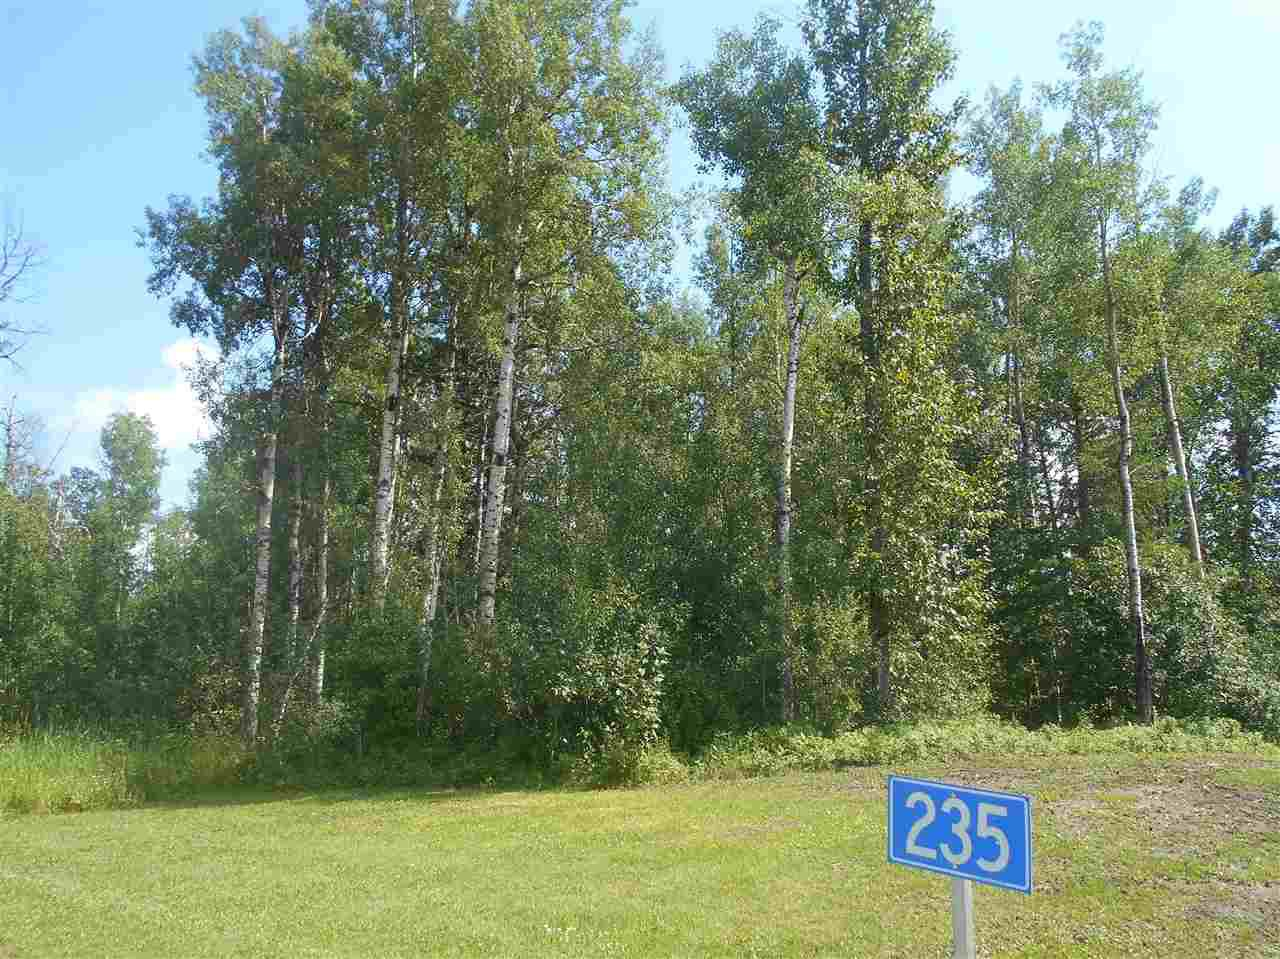 Main Photo: 235 49119 RR73: Rural Brazeau County Rural Land/Vacant Lot for sale : MLS®# E4208391